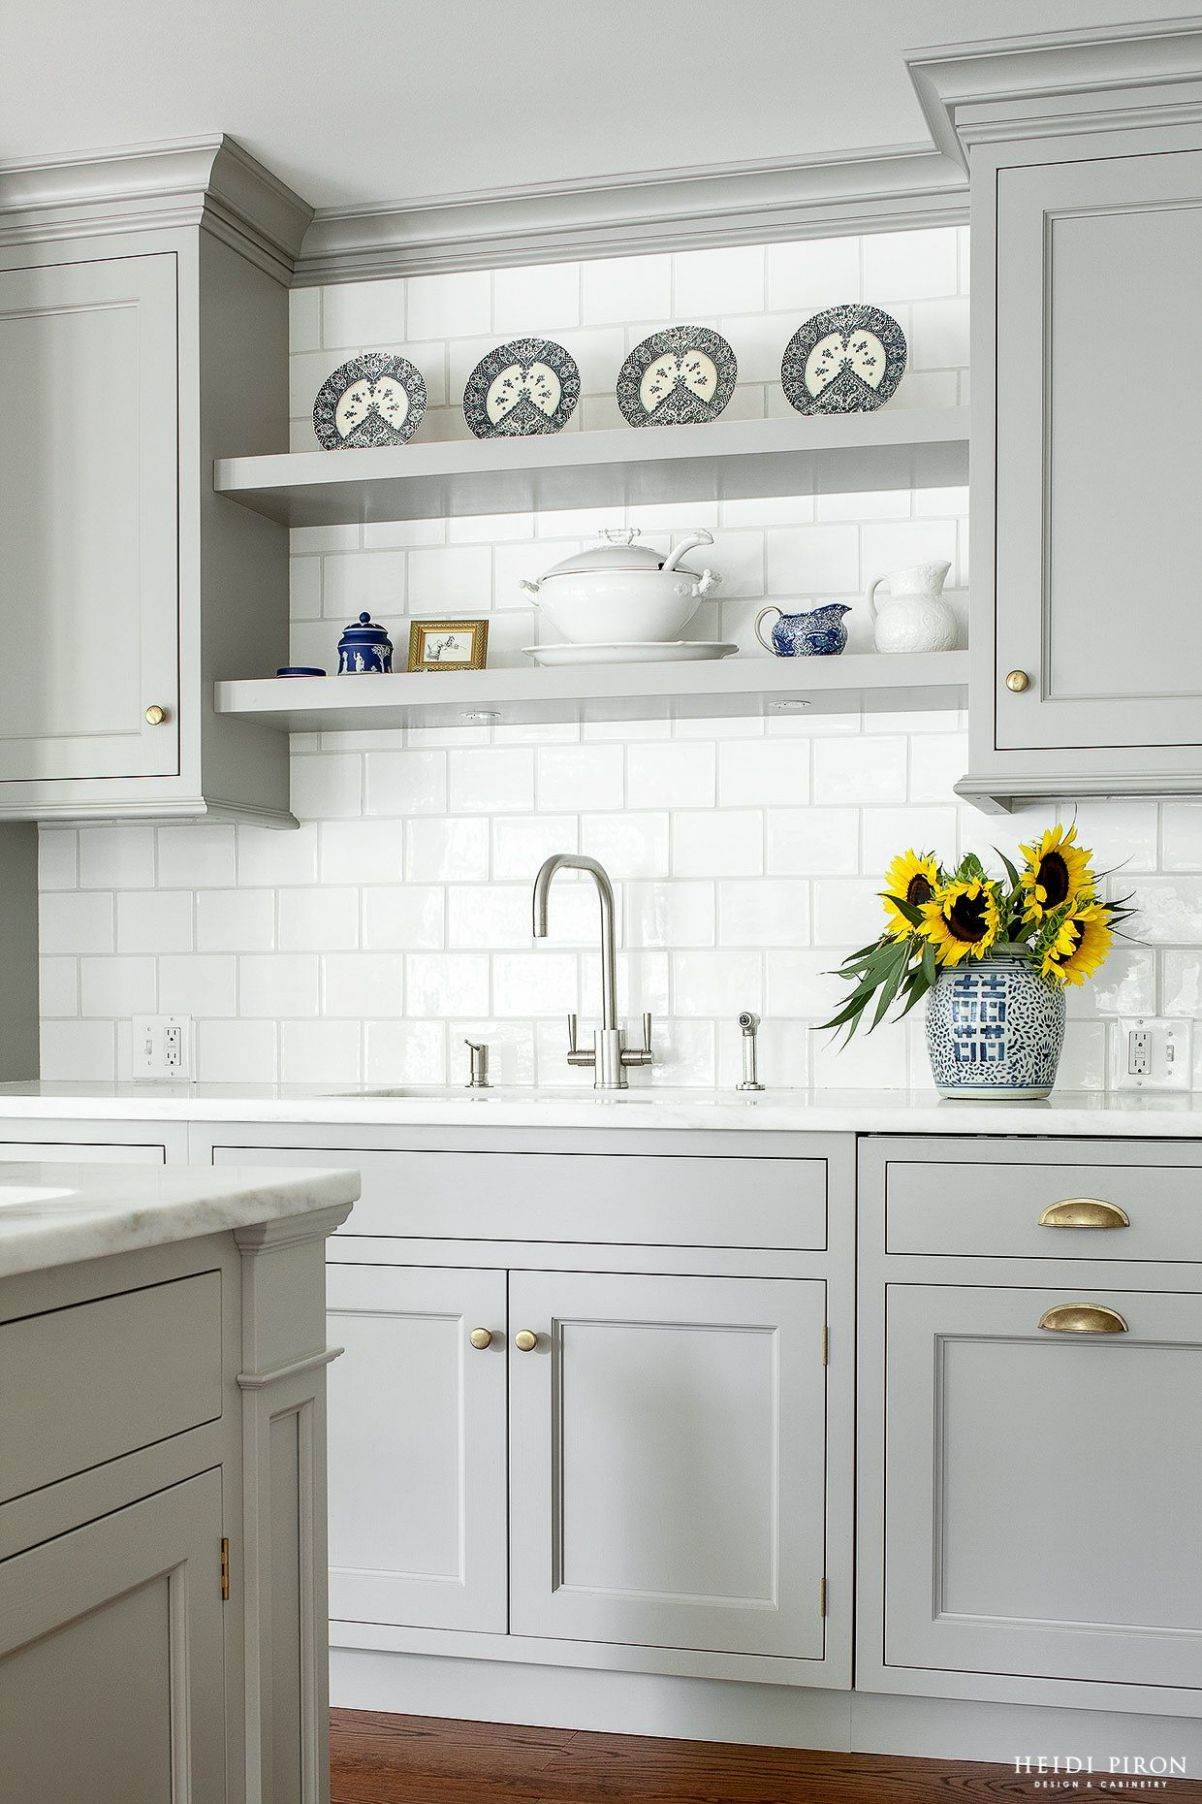 Heidi Piron Design and Cabinetry - Traditional - shelving over ...